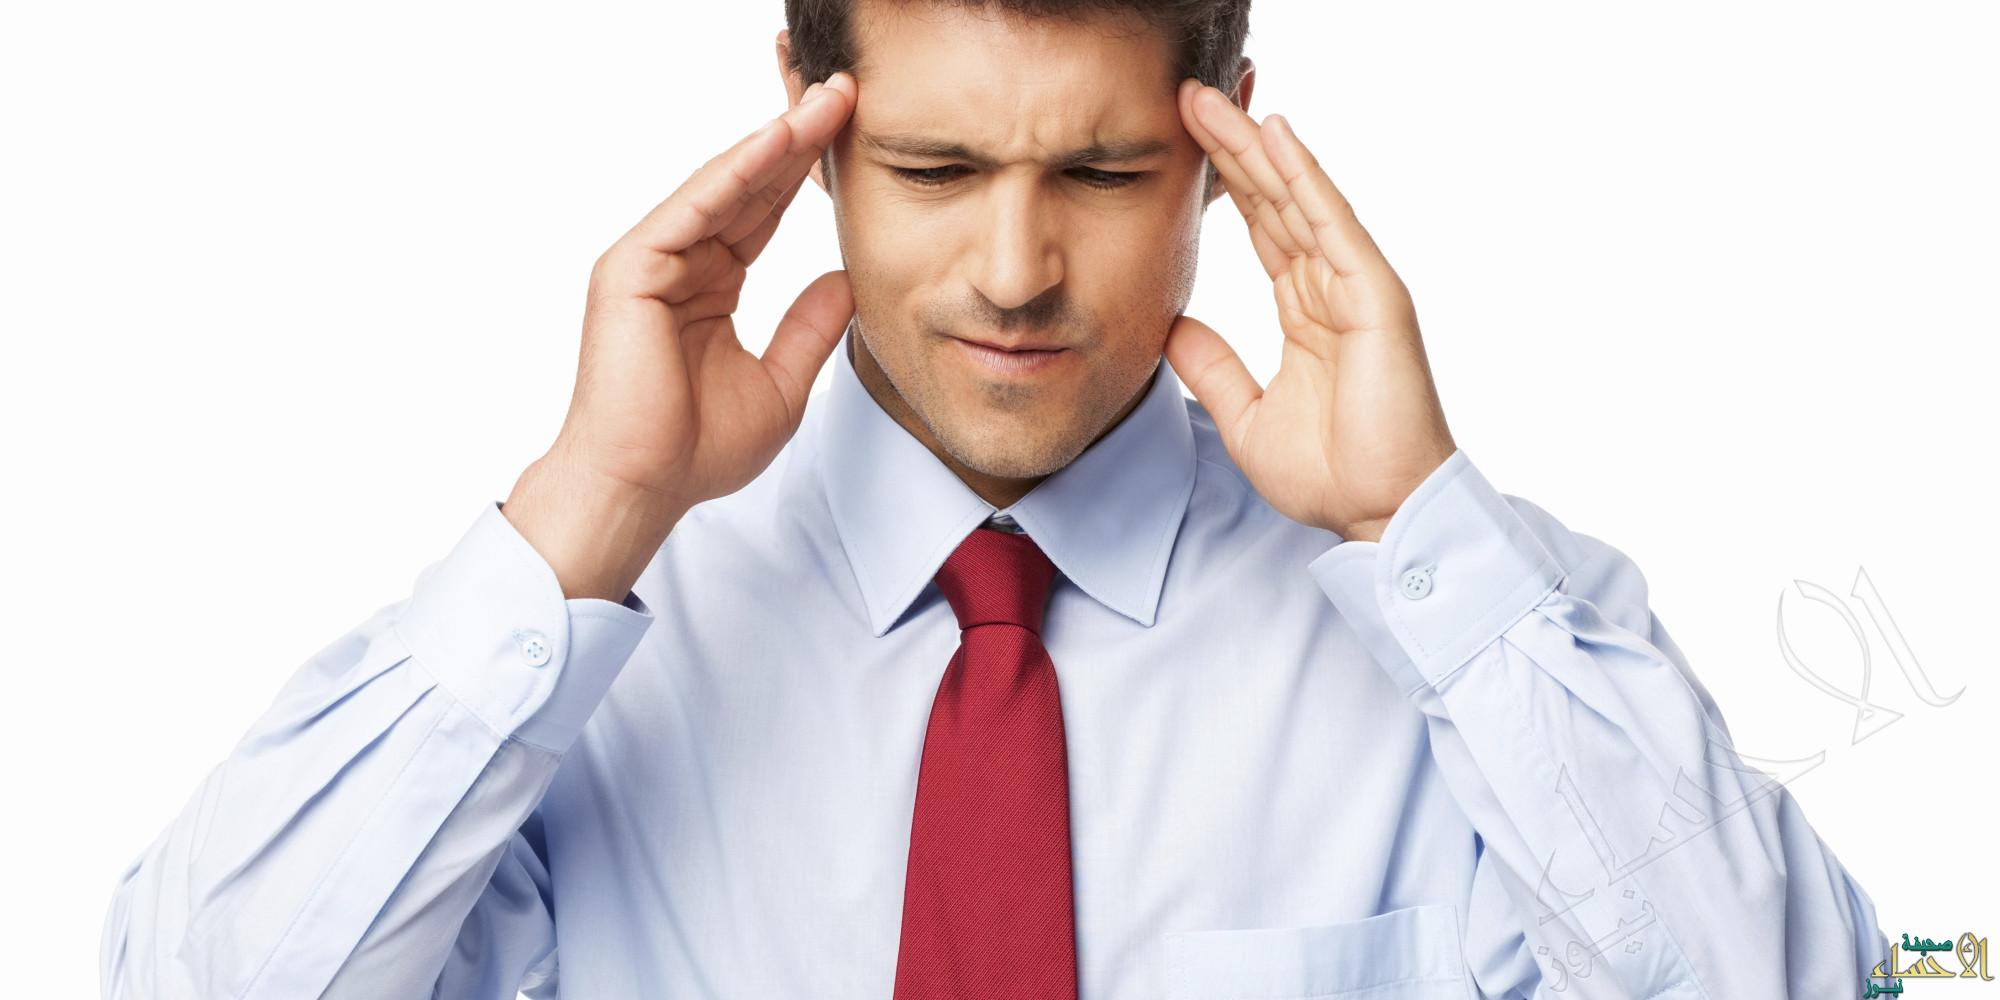 Male Executive With Severe Headache - Isolated